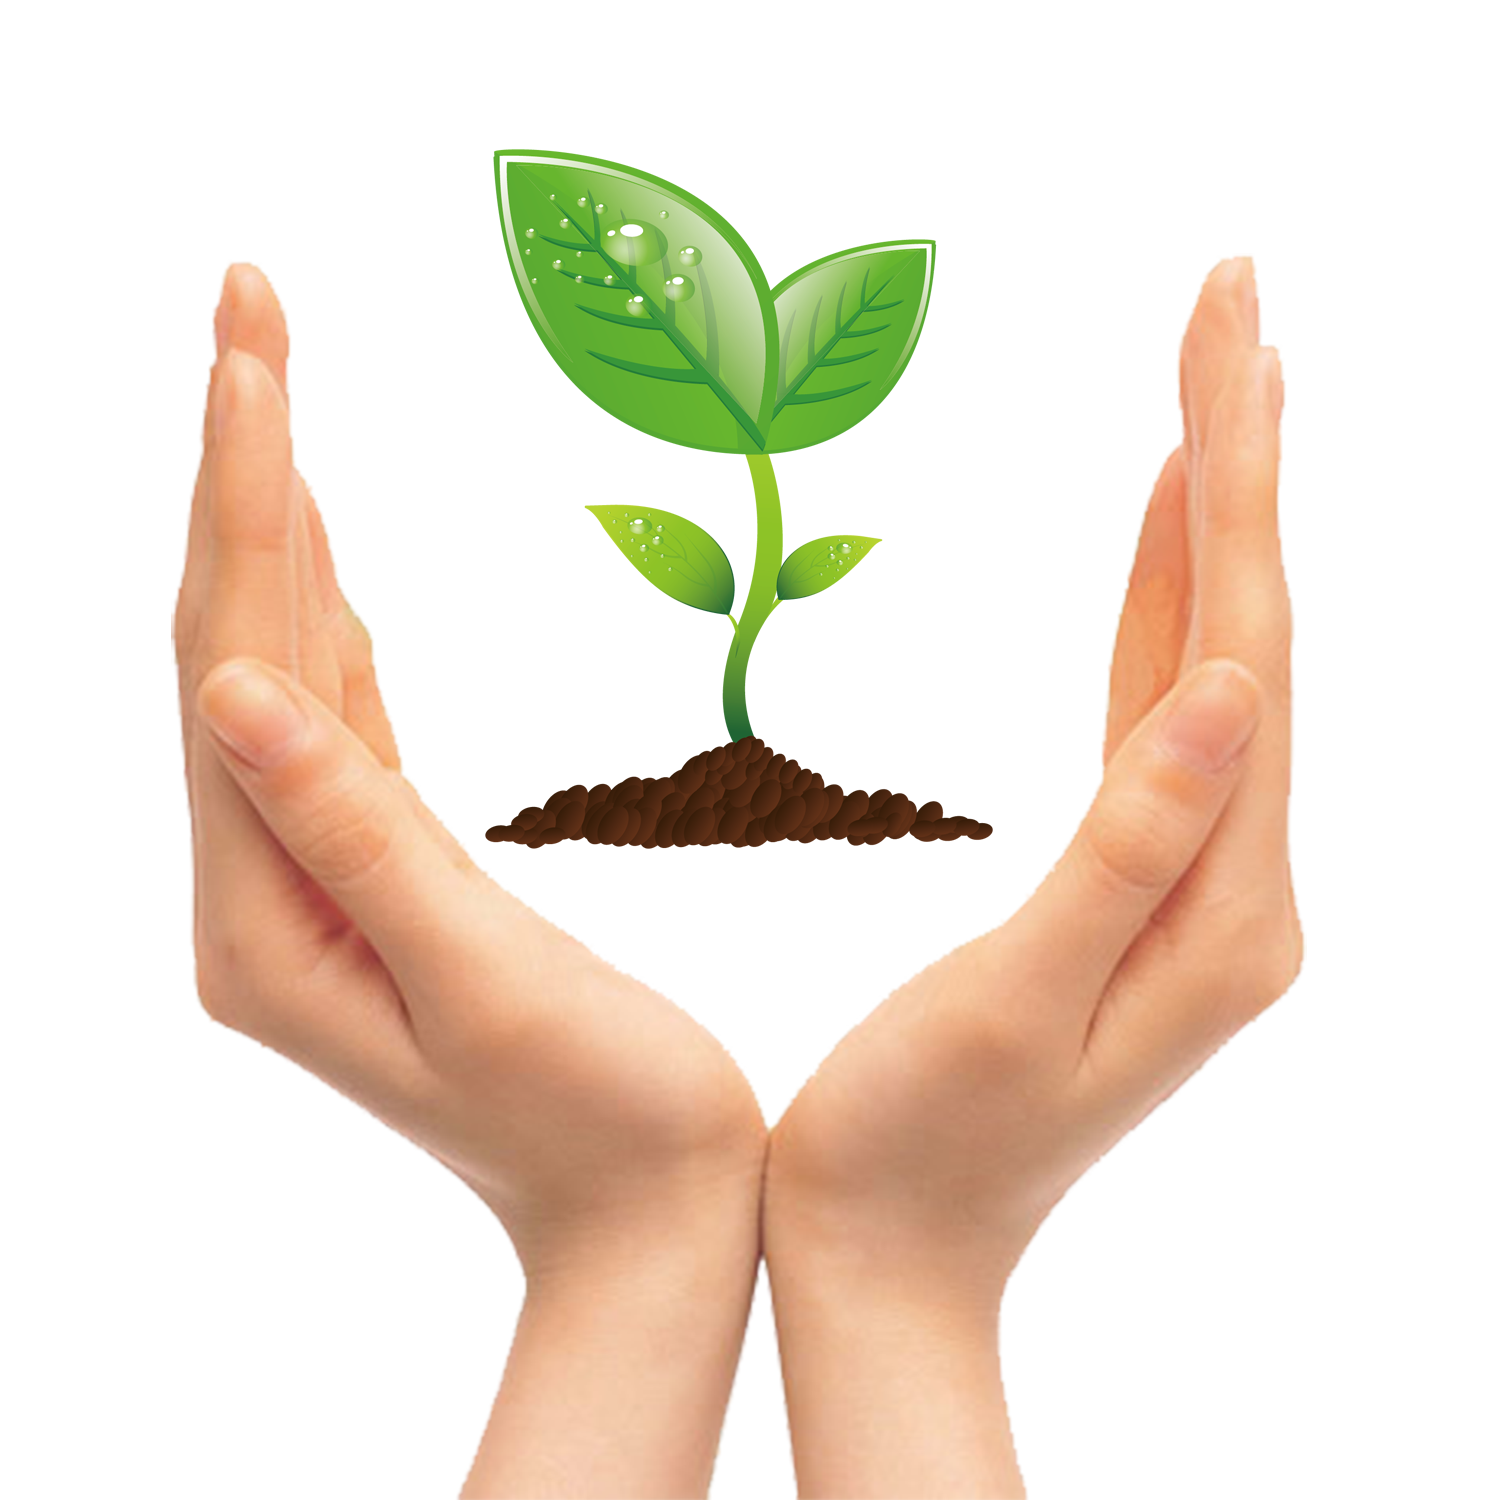 Seedling clip art green. Tree clipart hand holding